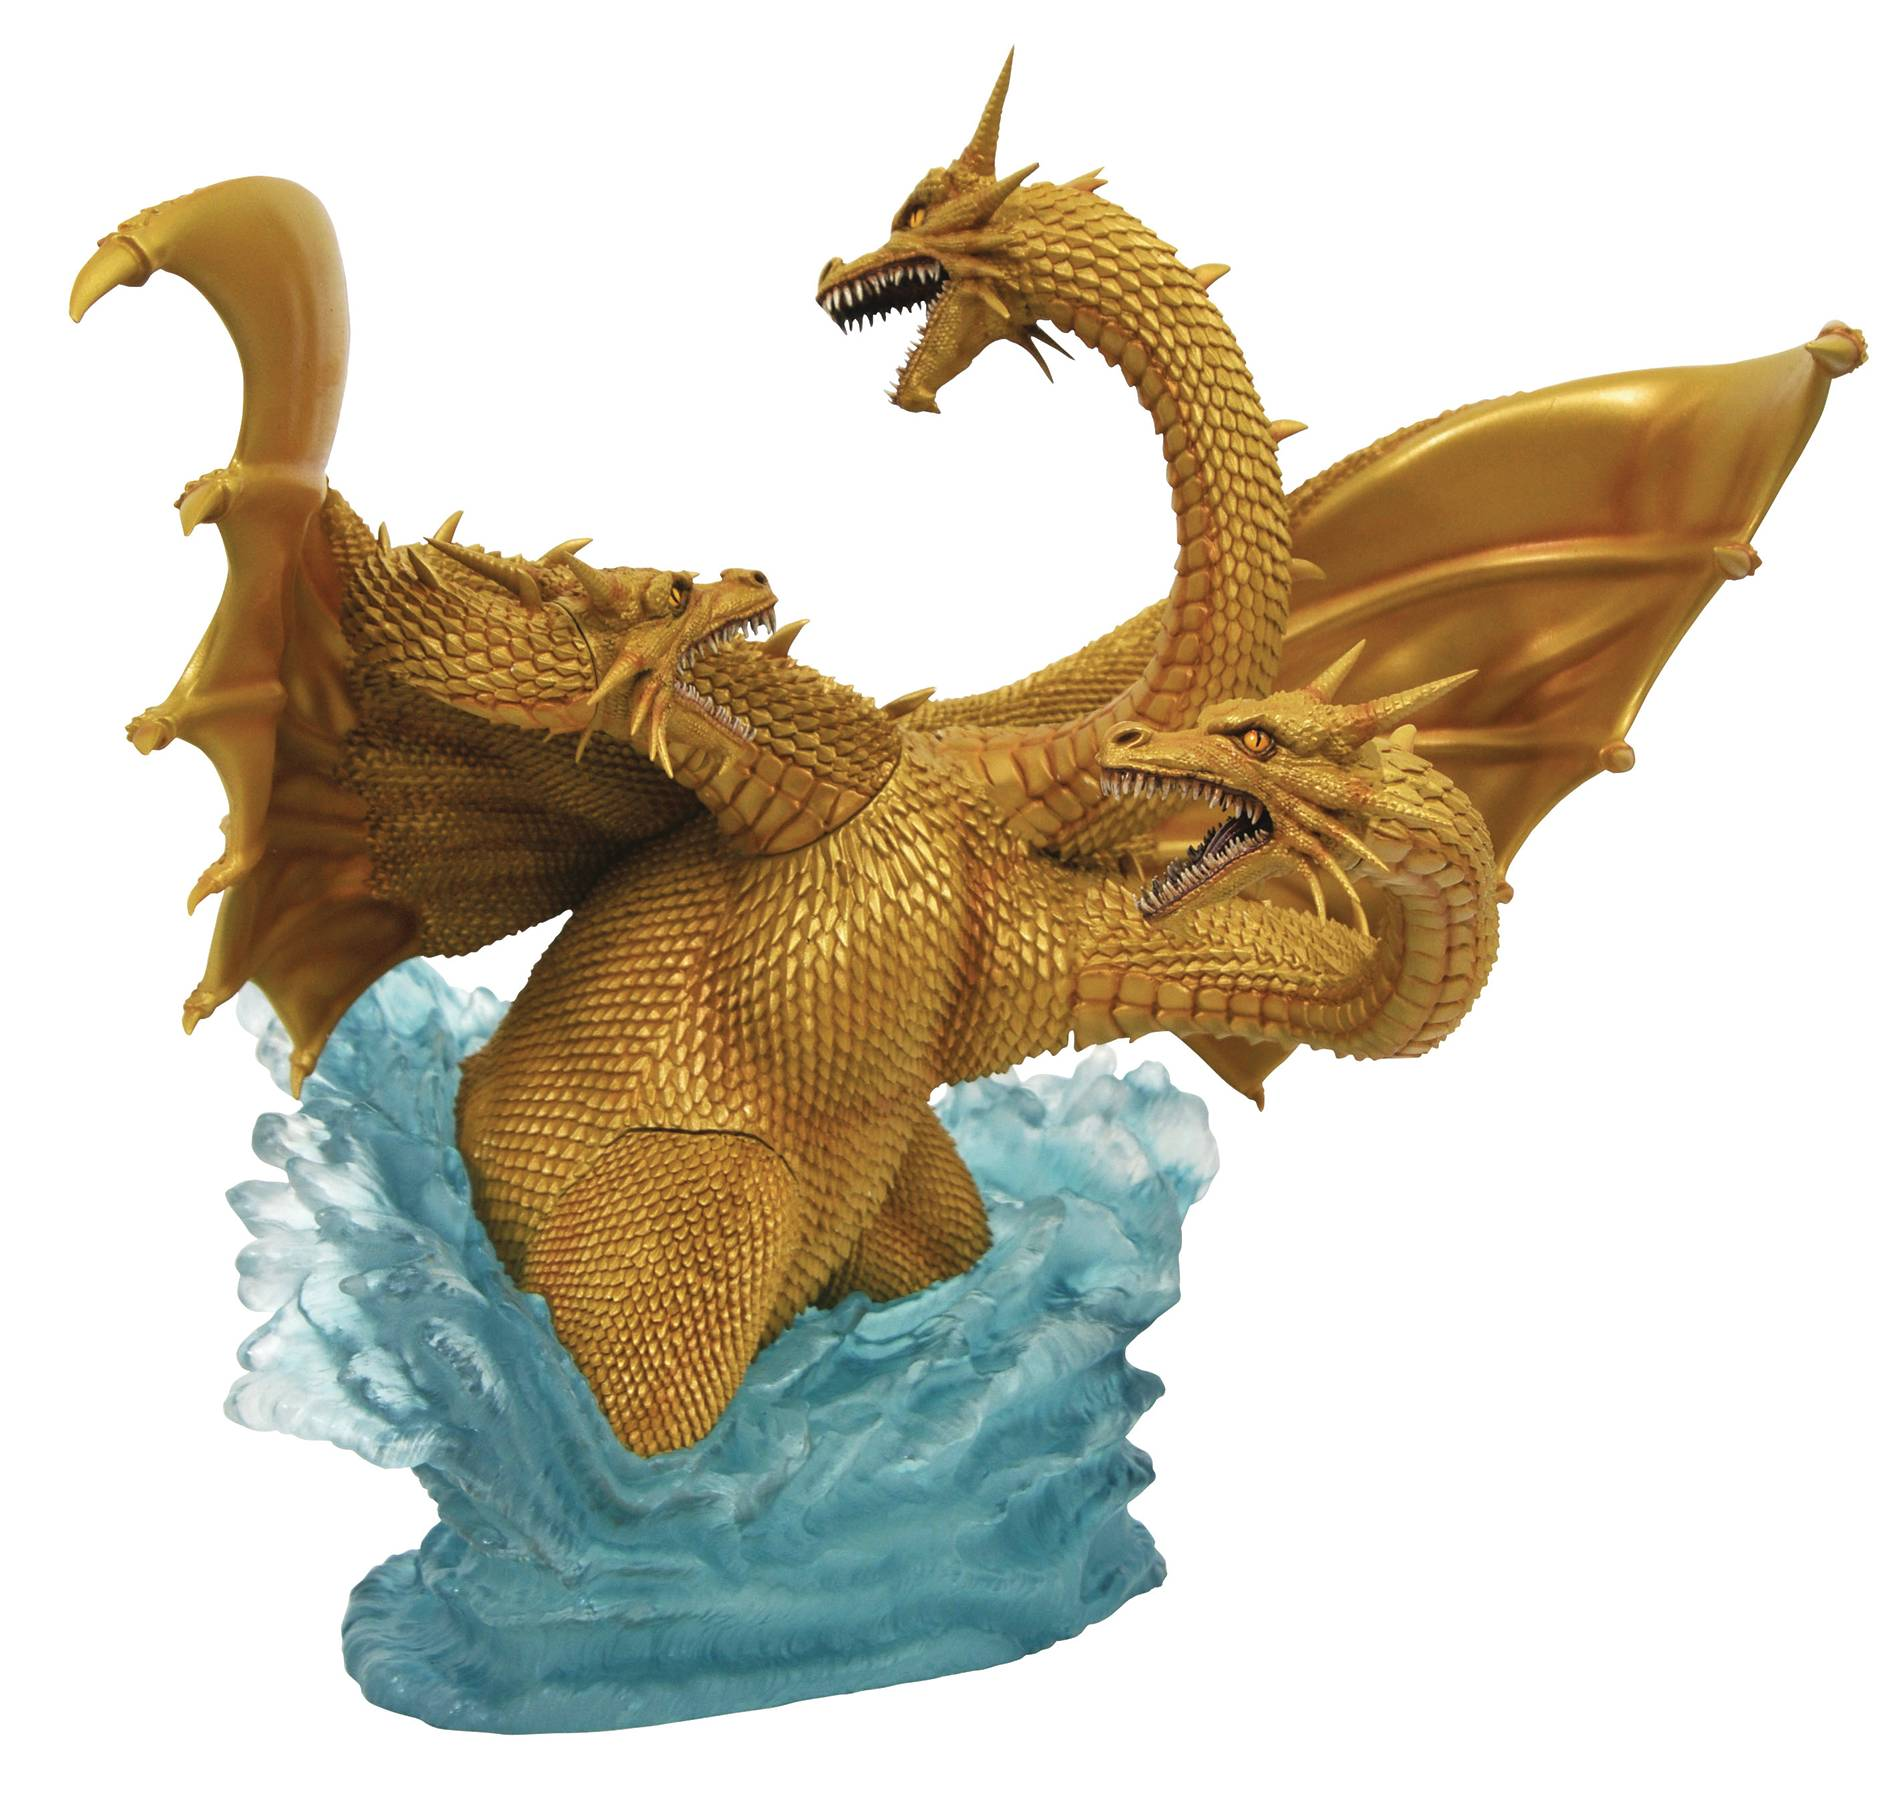 GODZILLA GALLERY 1991 KING GHIDORAH DLX PVC FIG